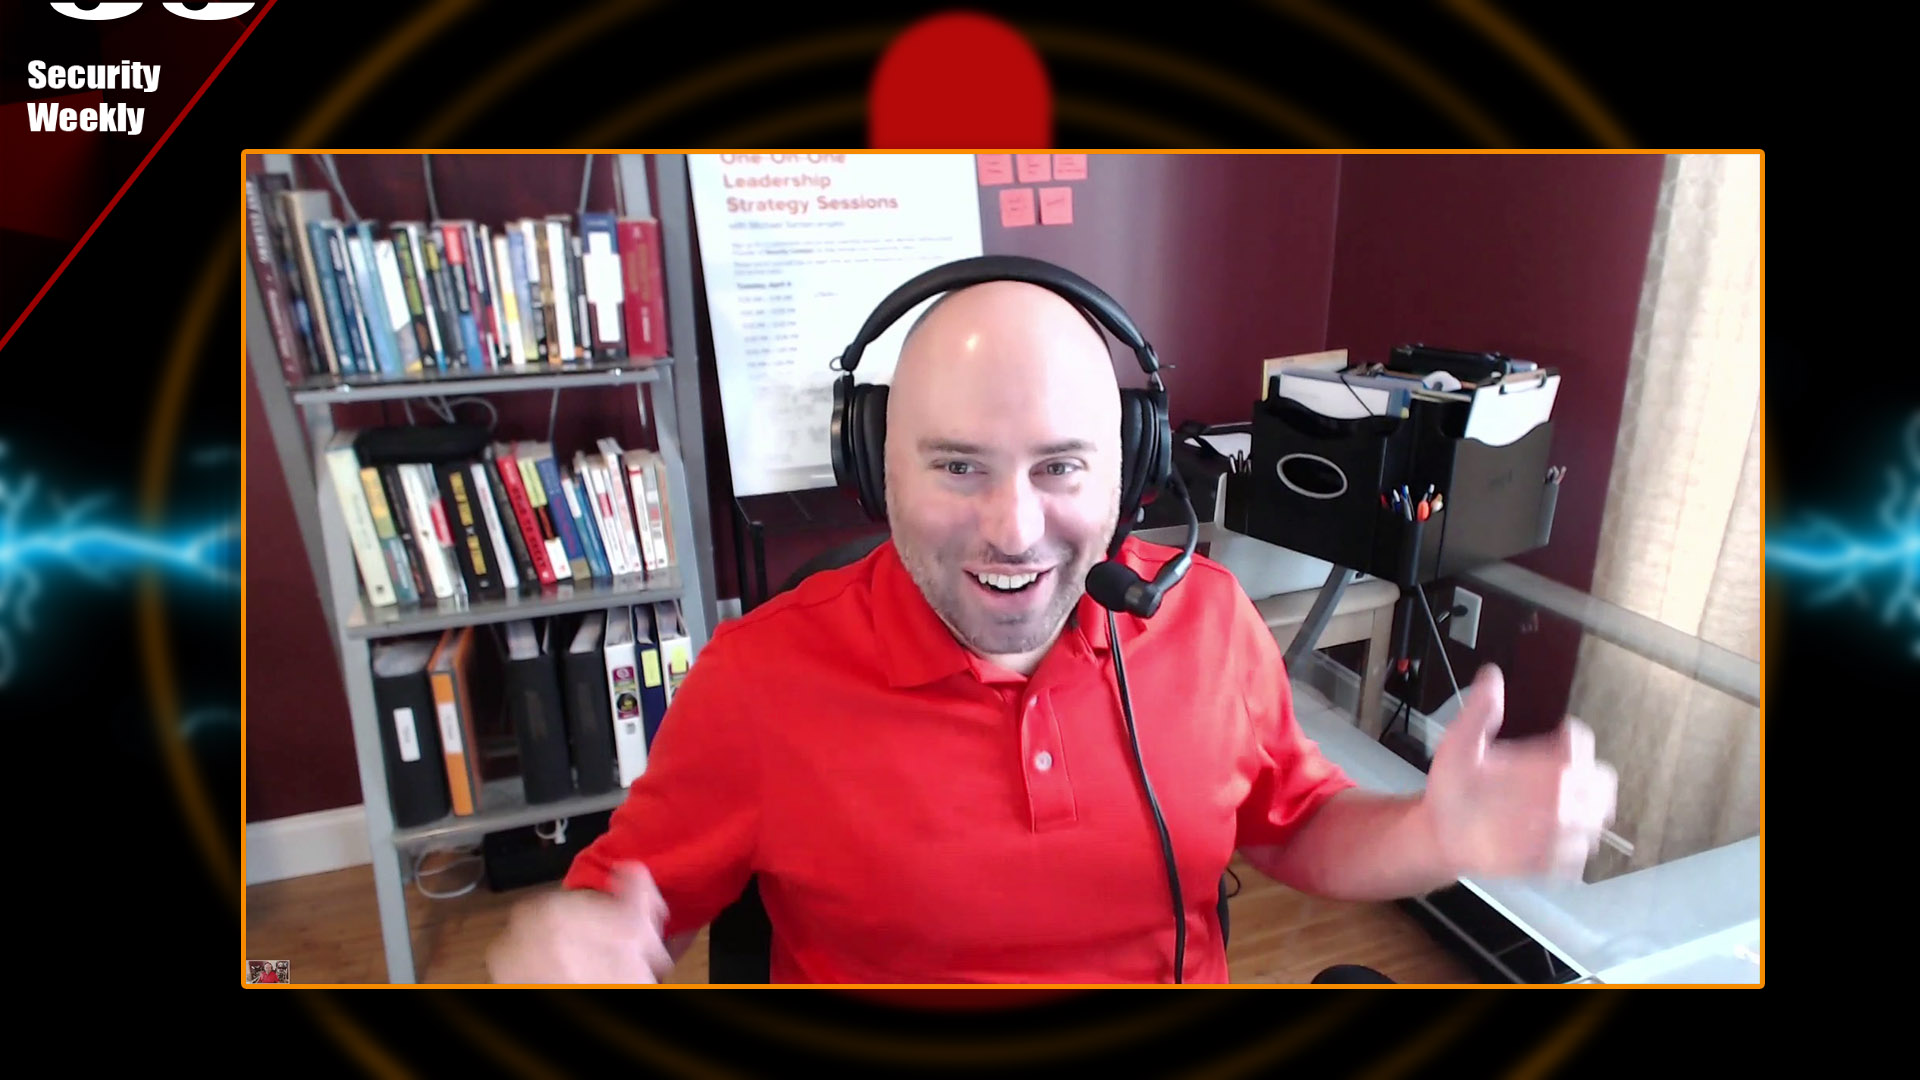 Artwork for News - Startup Security Weekly #49